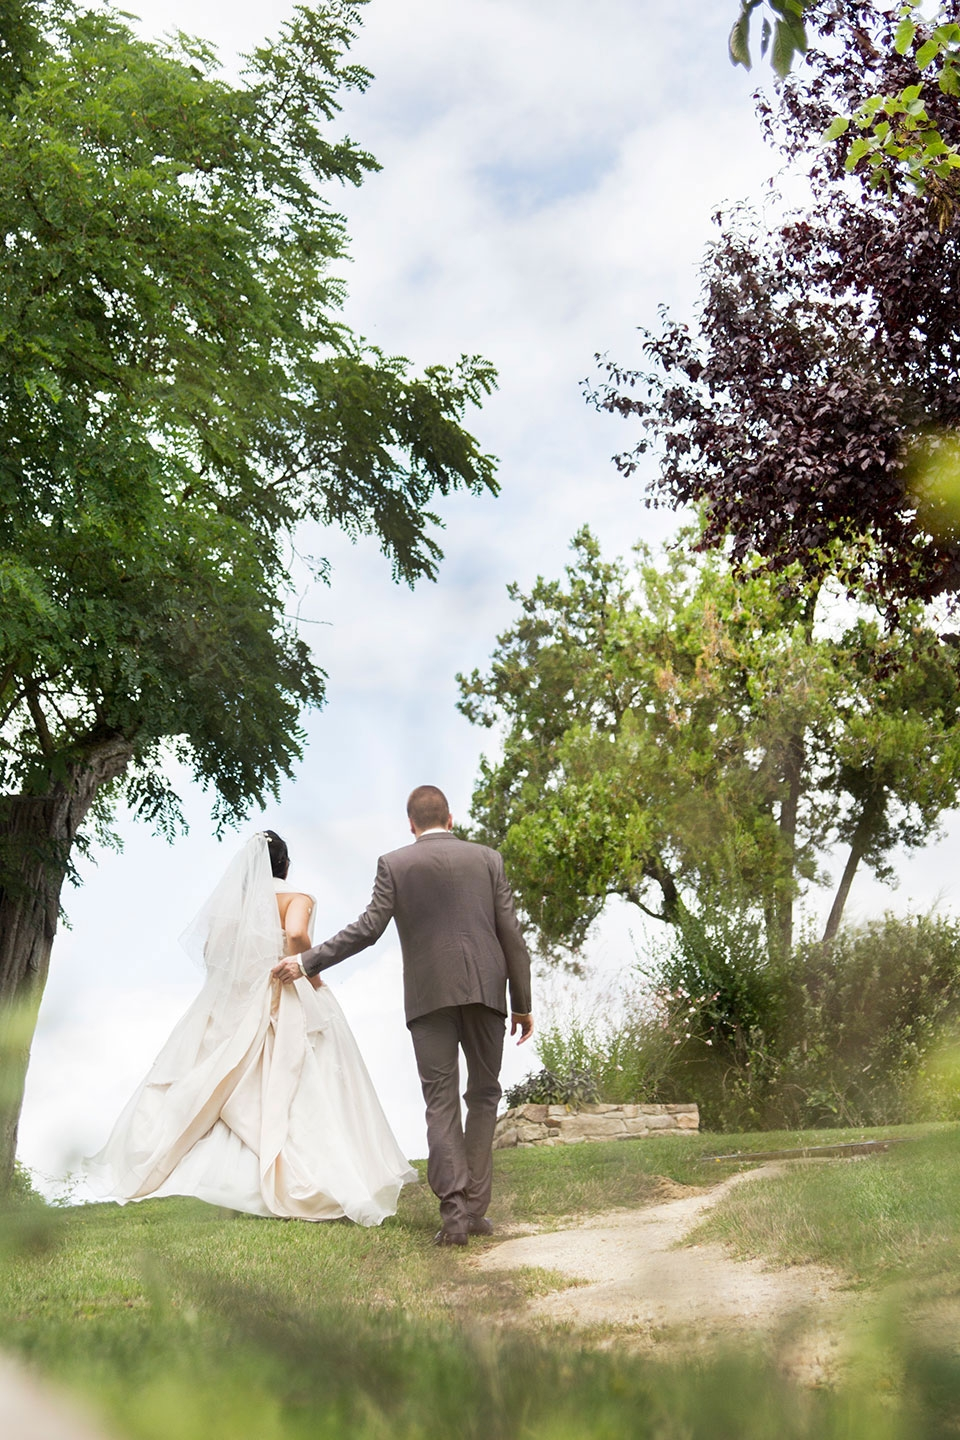 particuliers-mariages-oui-mayingcyril-17